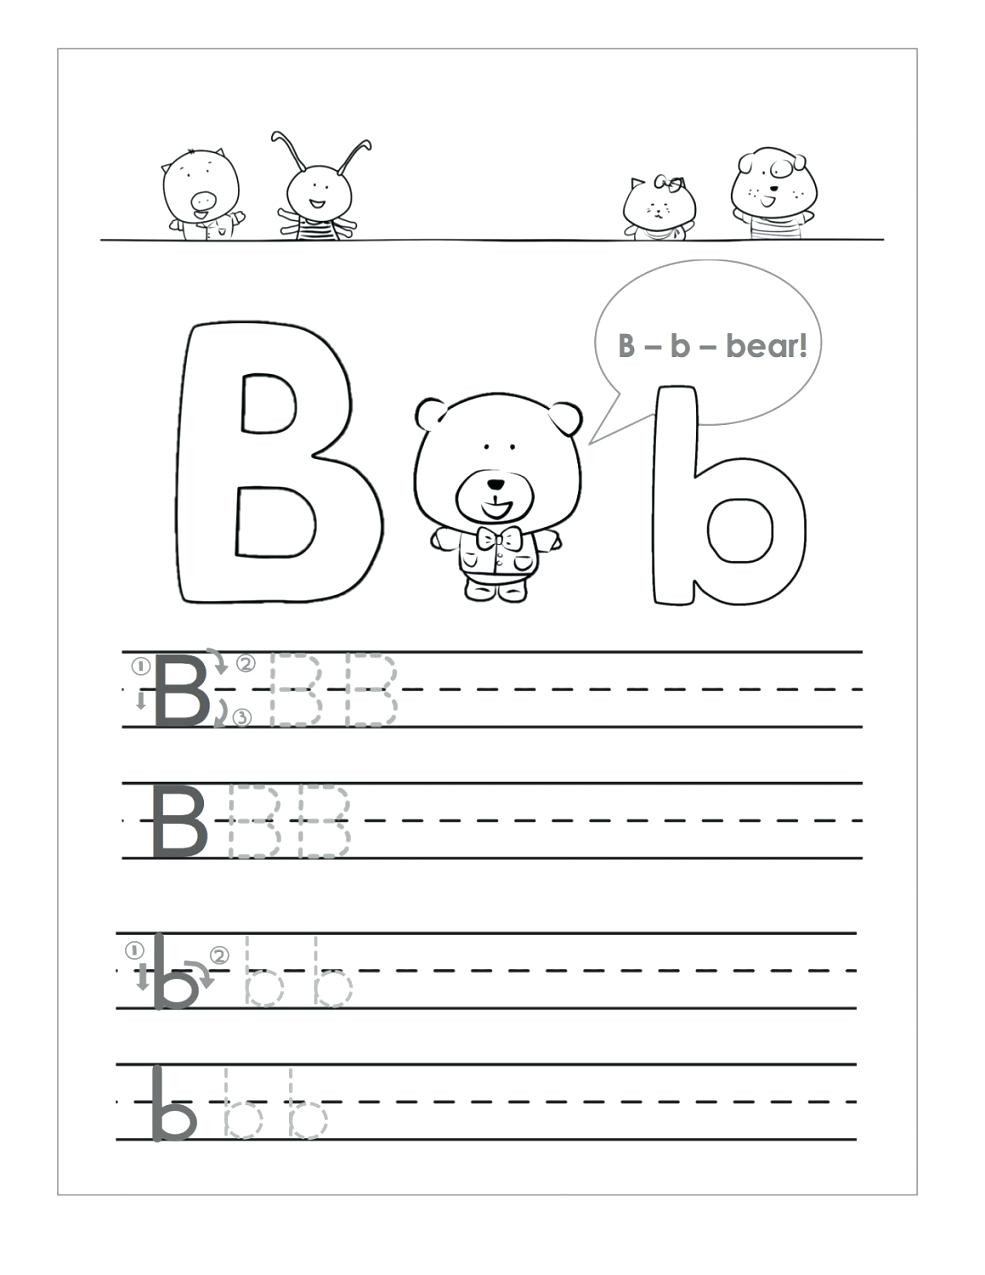 Preschool Worksheets Letter B Letter B Worksheets to Printable Letter B Worksheets